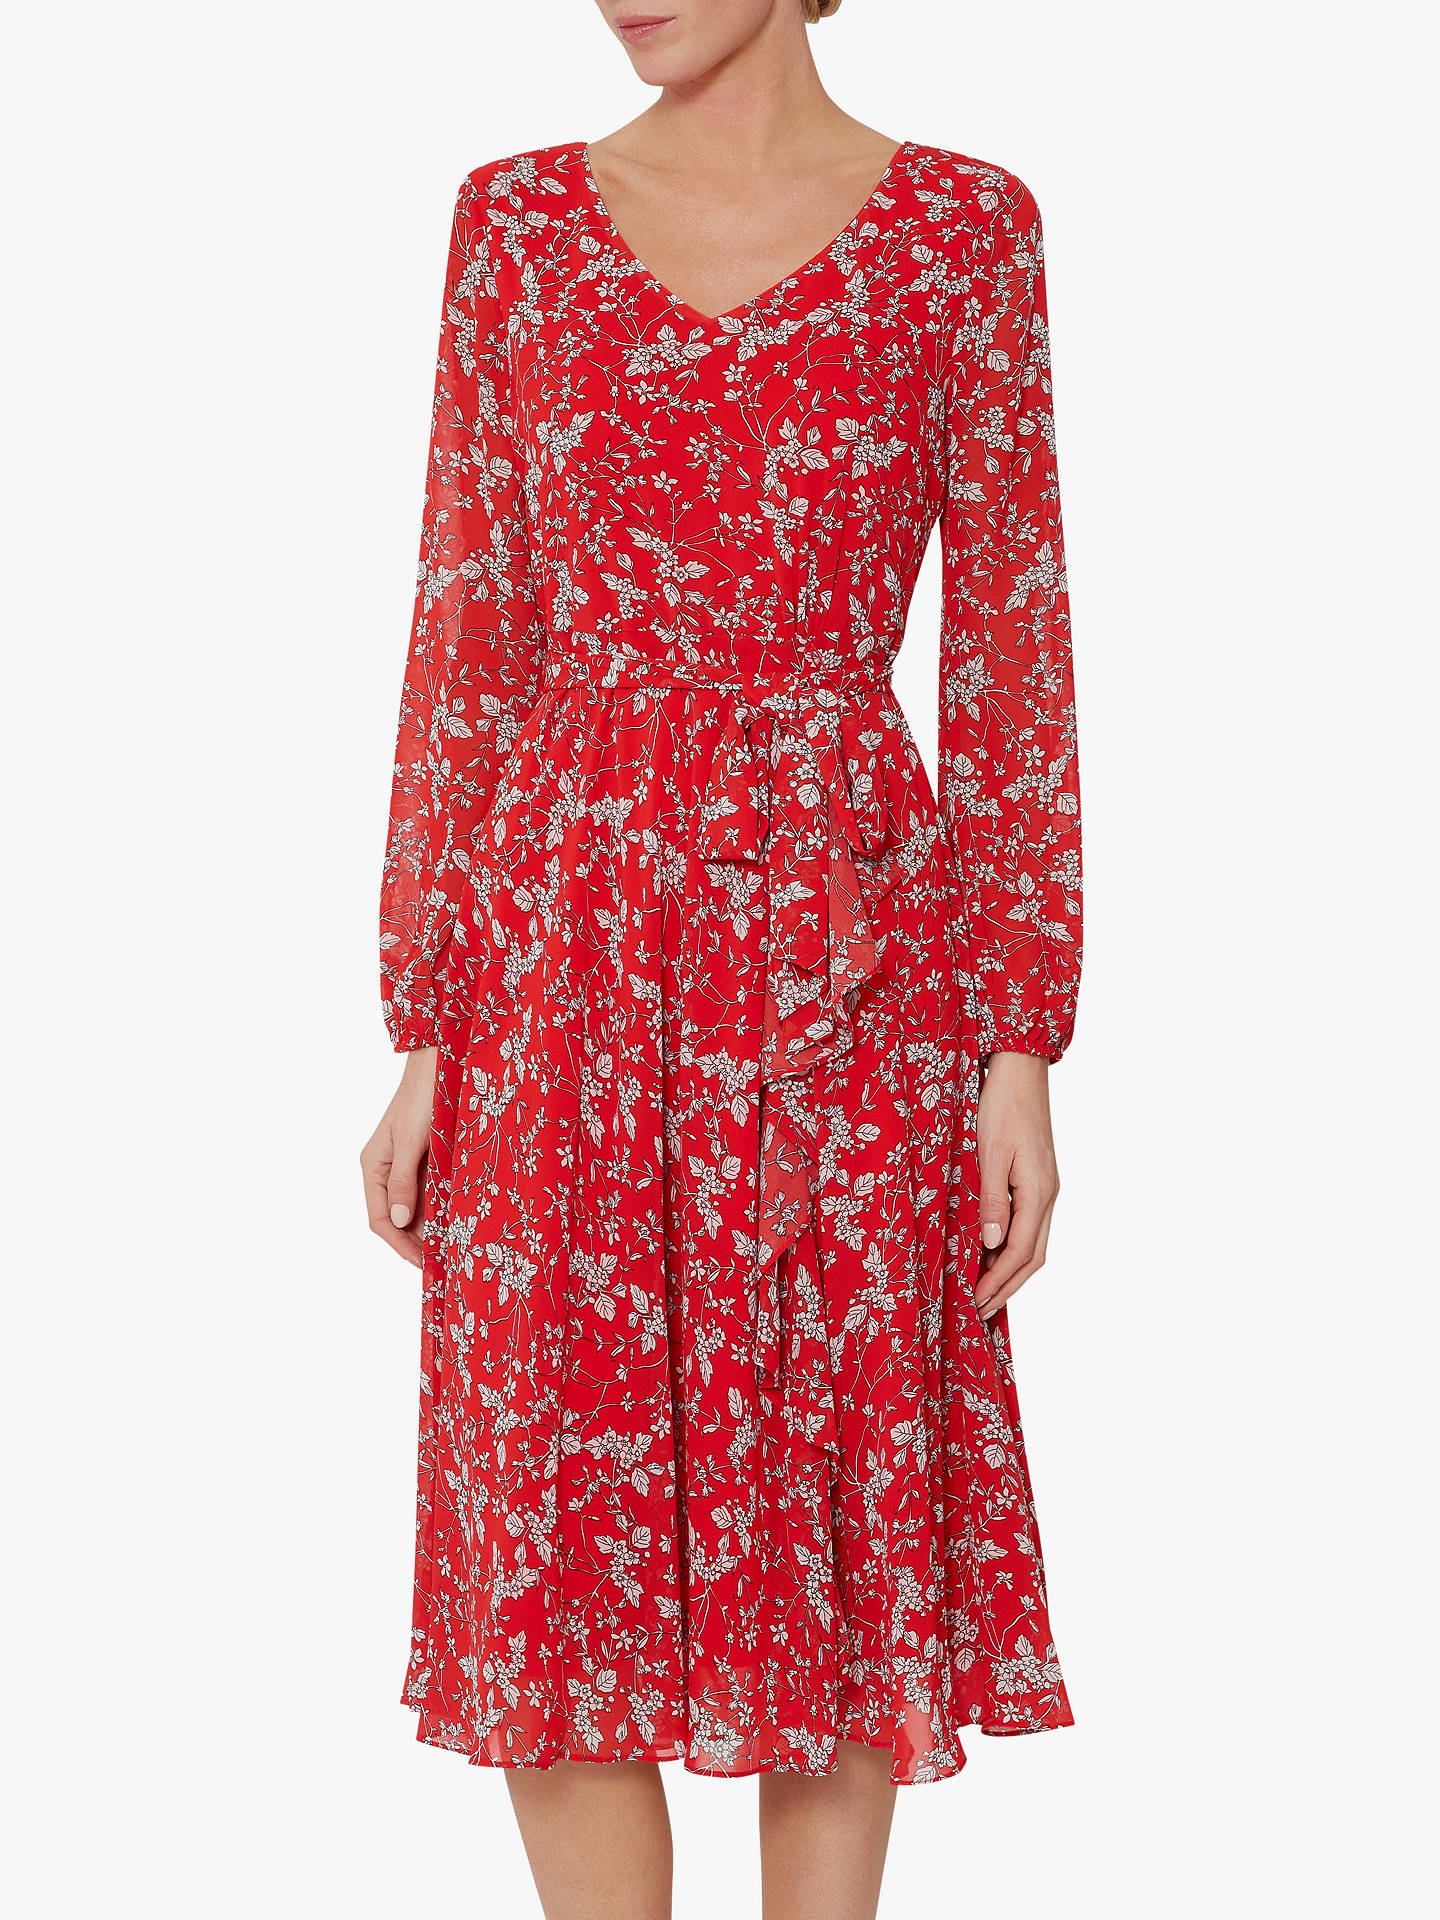 8edd1cf8f5f5 Buy Gina Bacconi Ridley Floral Belt Dress, Red/White, 16 Online at  johnlewis ...